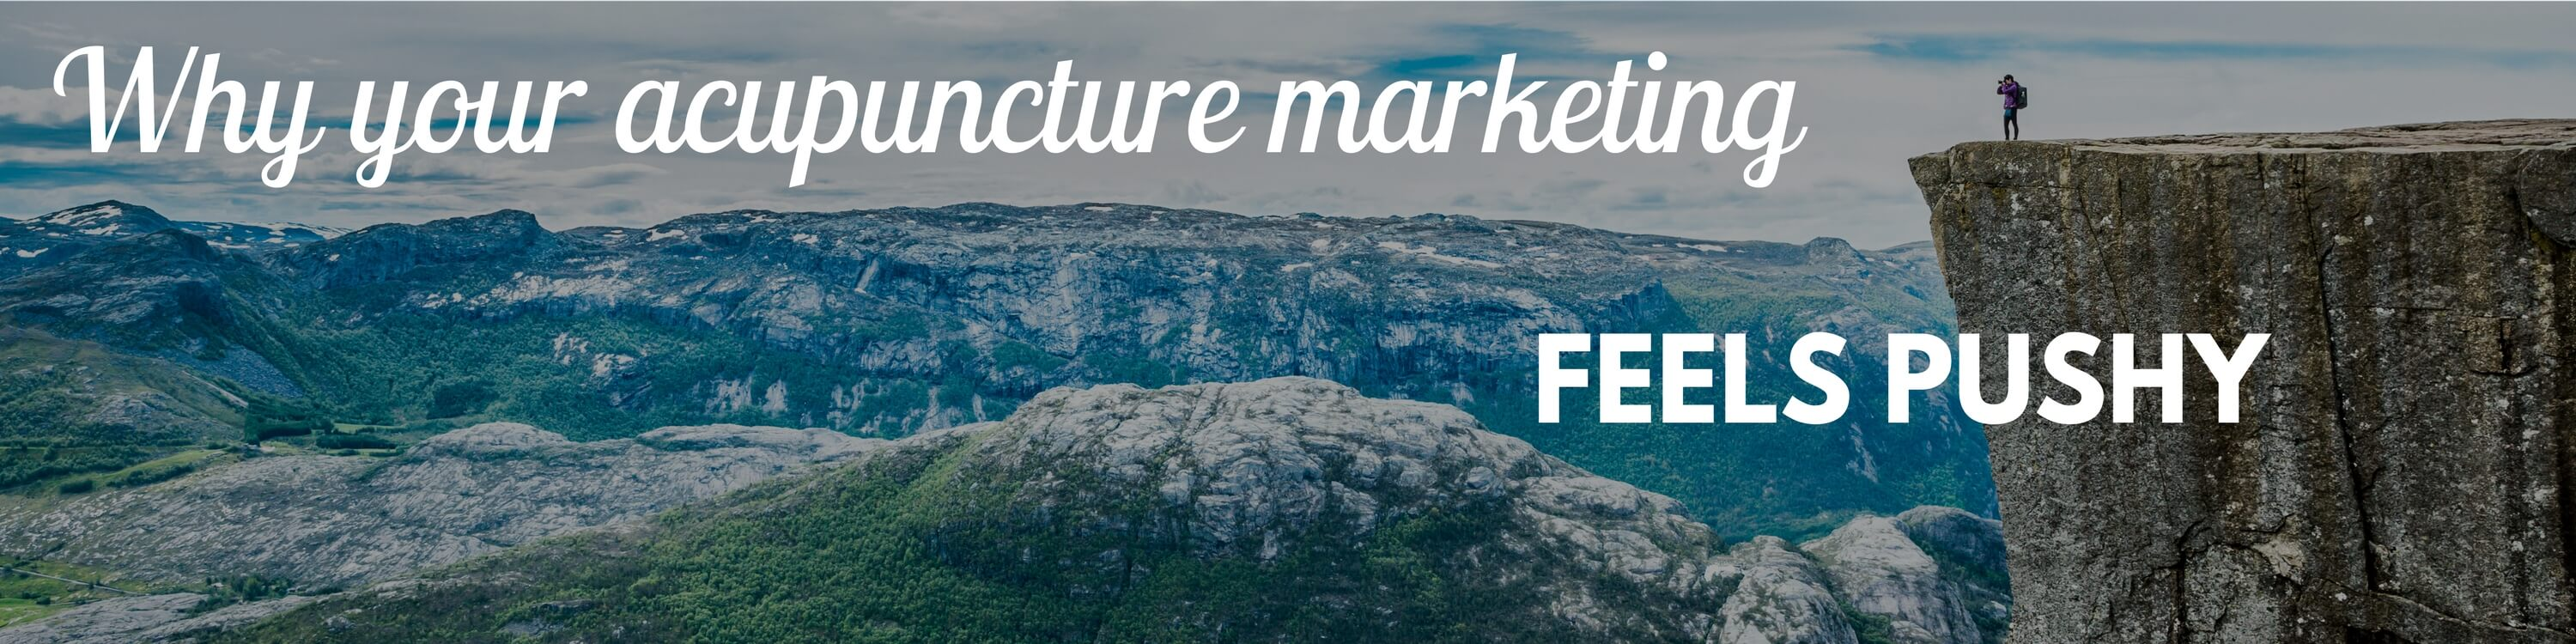 "Quote over a photograph of mountains, ""Why your acupuncture marketing feels pushy""."